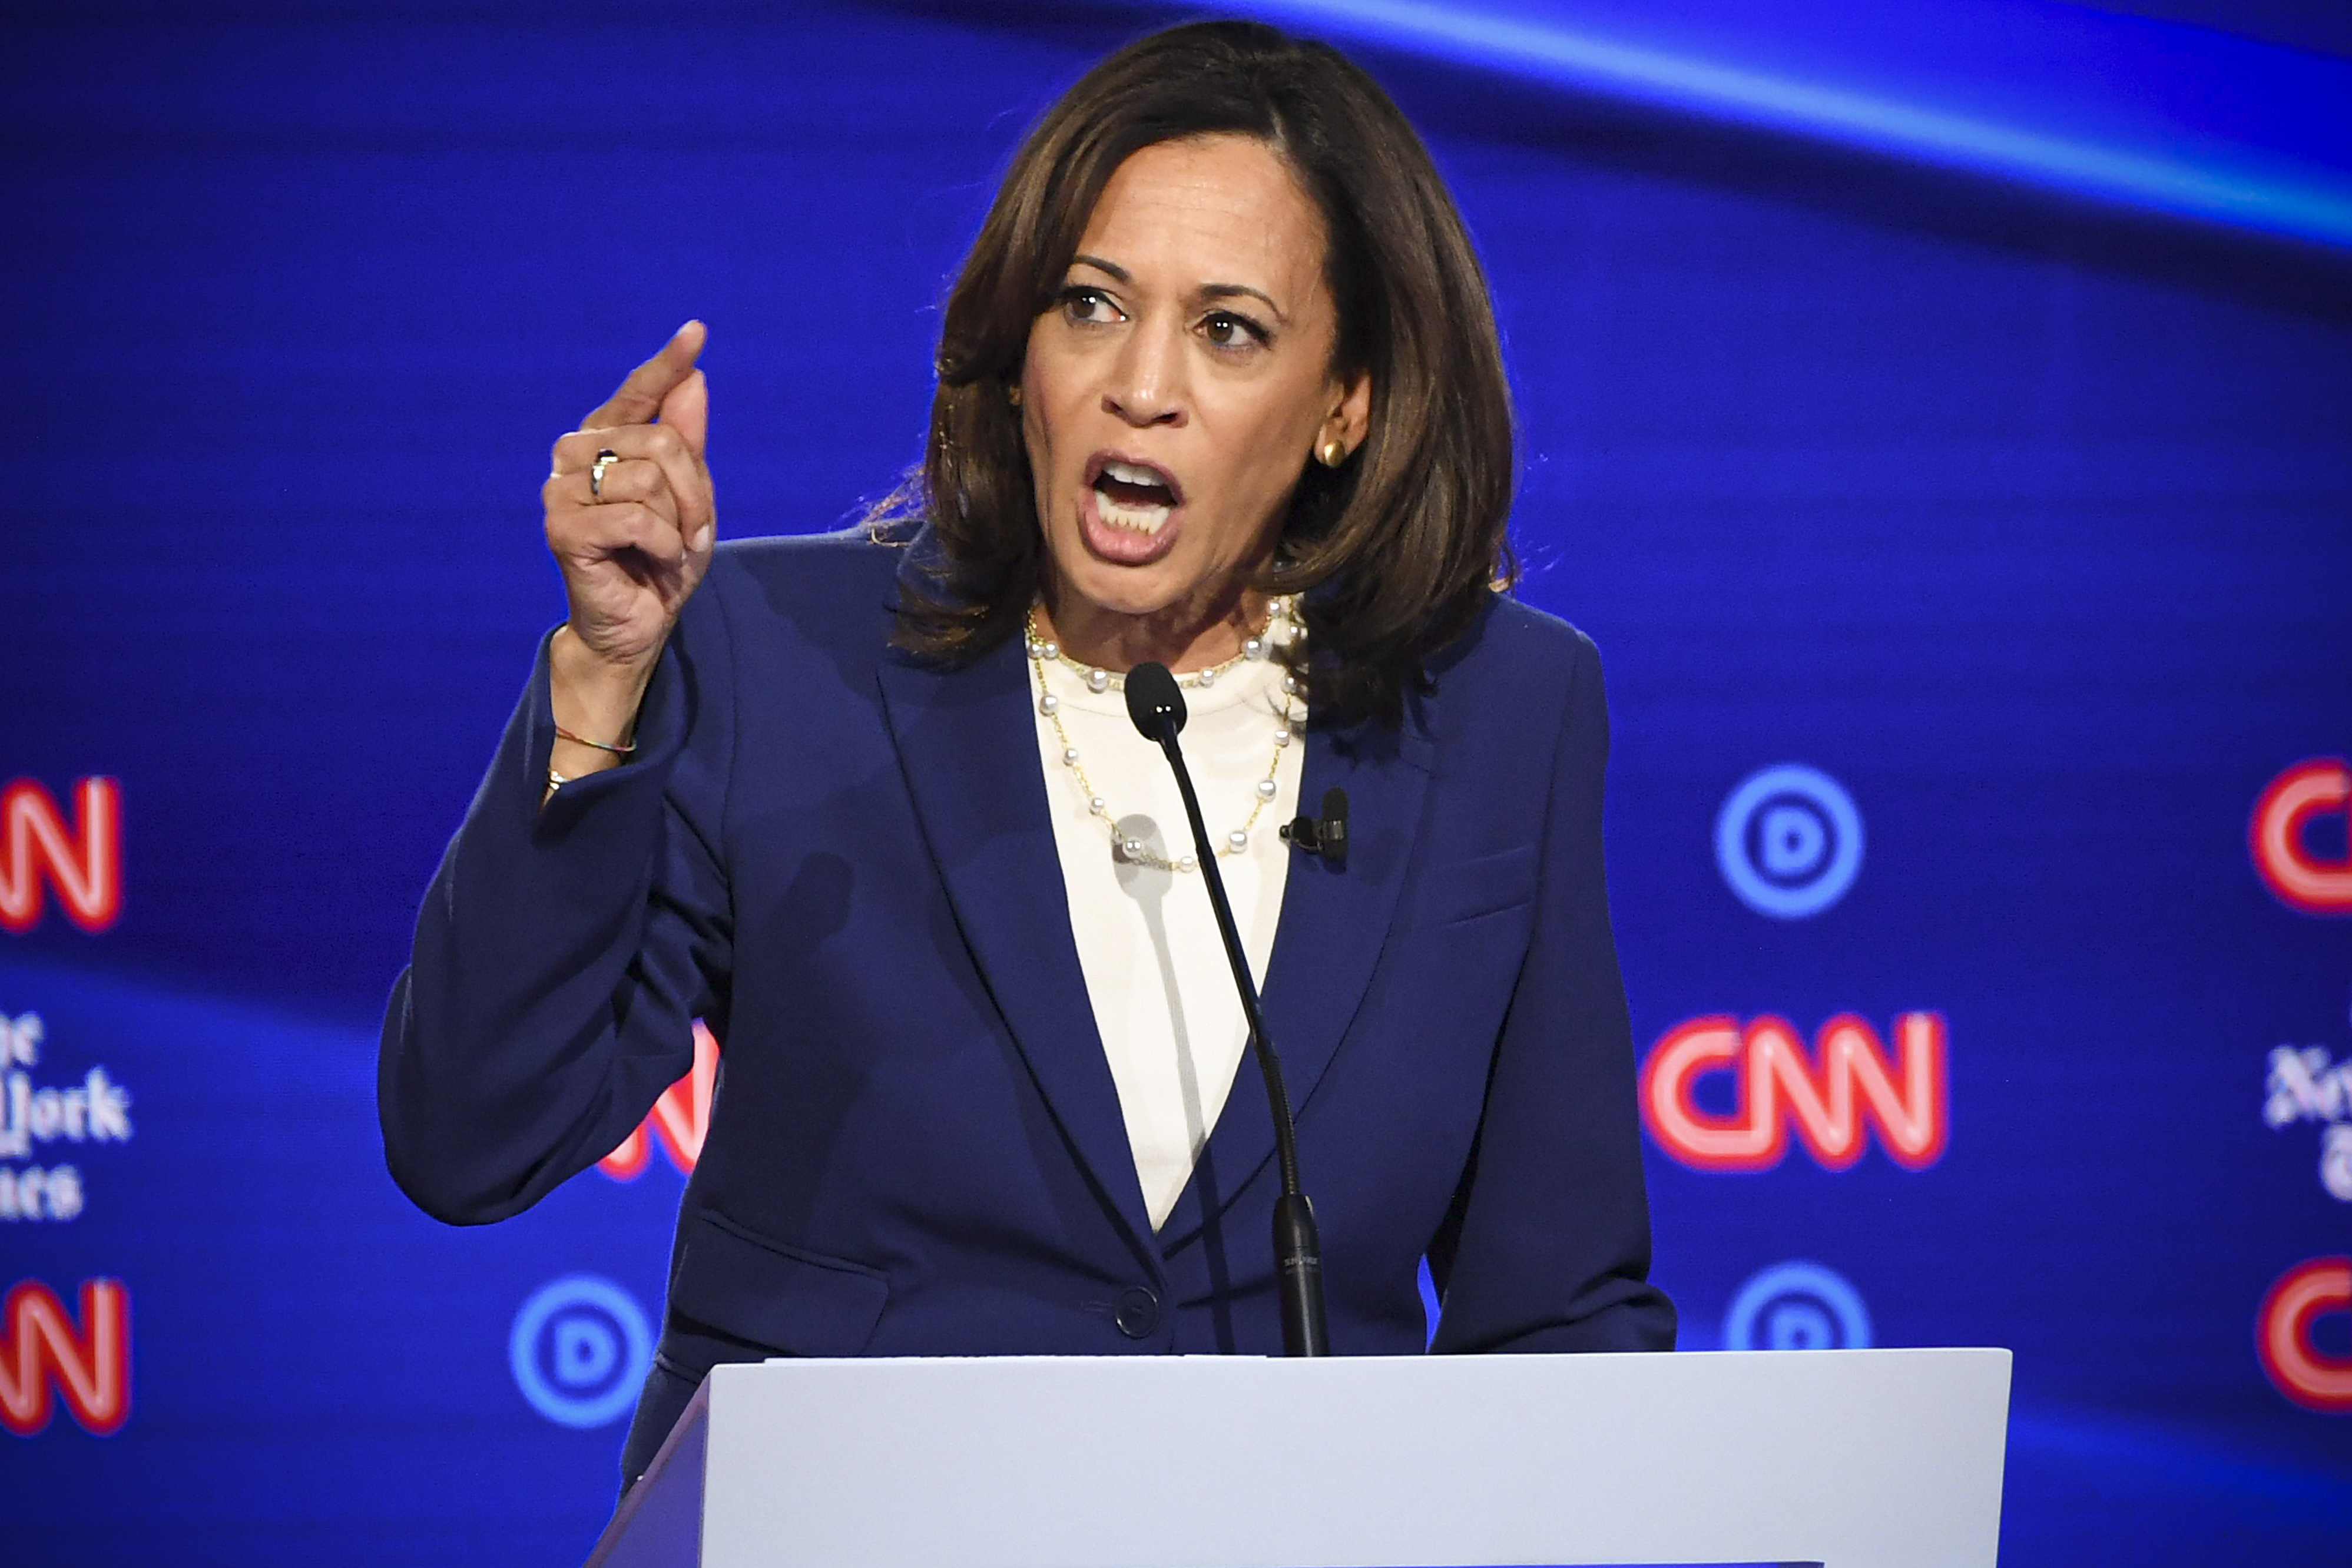 Kamala Harris brought up the most-ignored policy issue in the Democratic debates so far